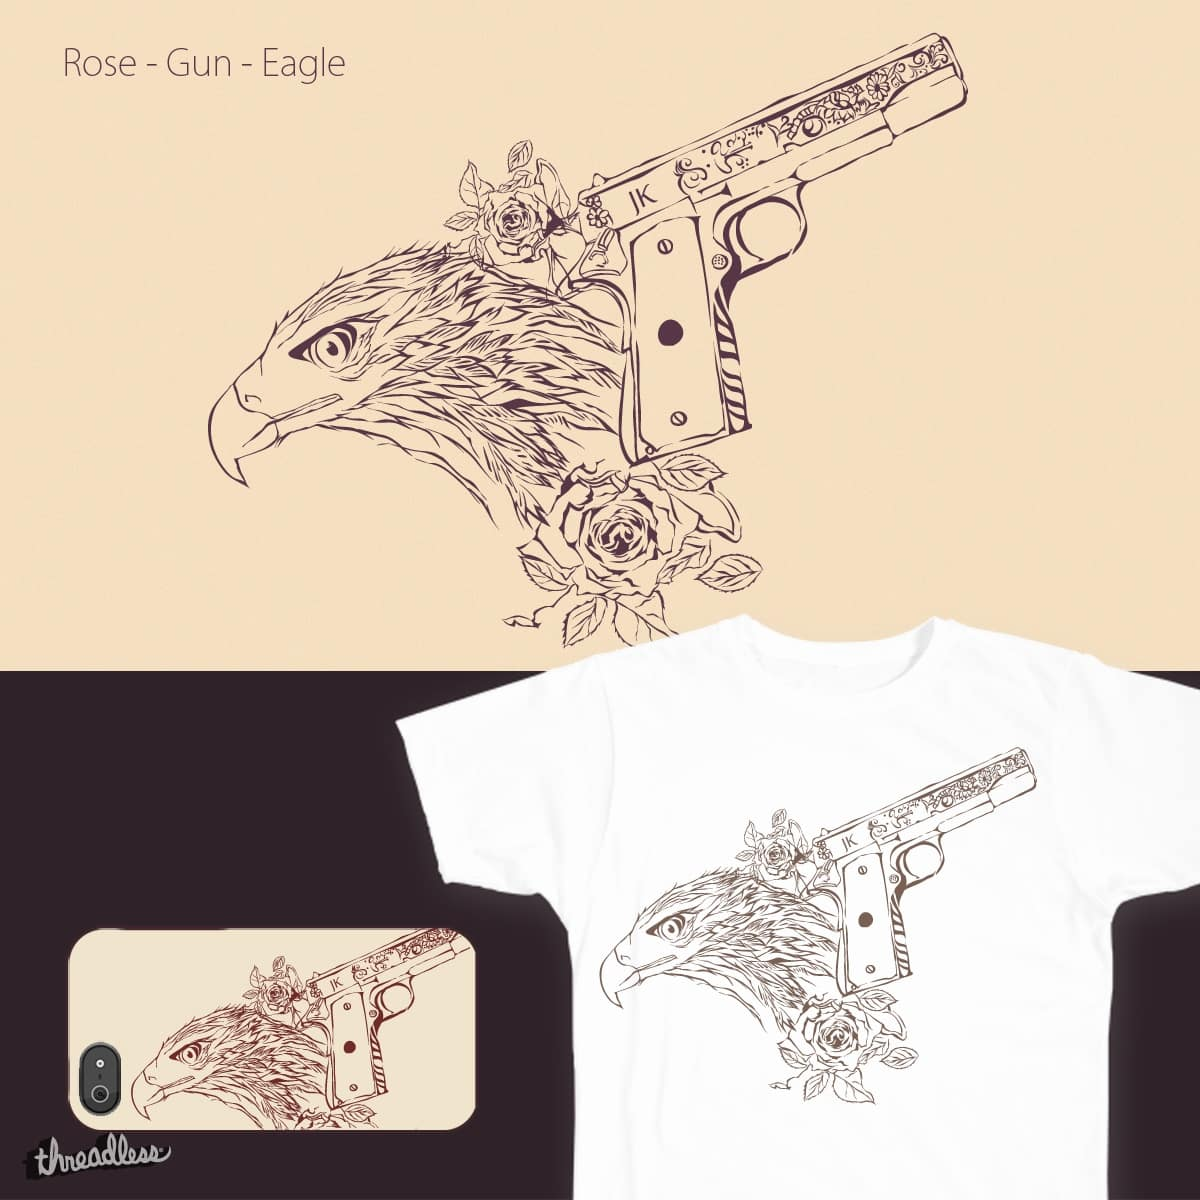 Rose - Gun - Eagle by JKMayer on Threadless